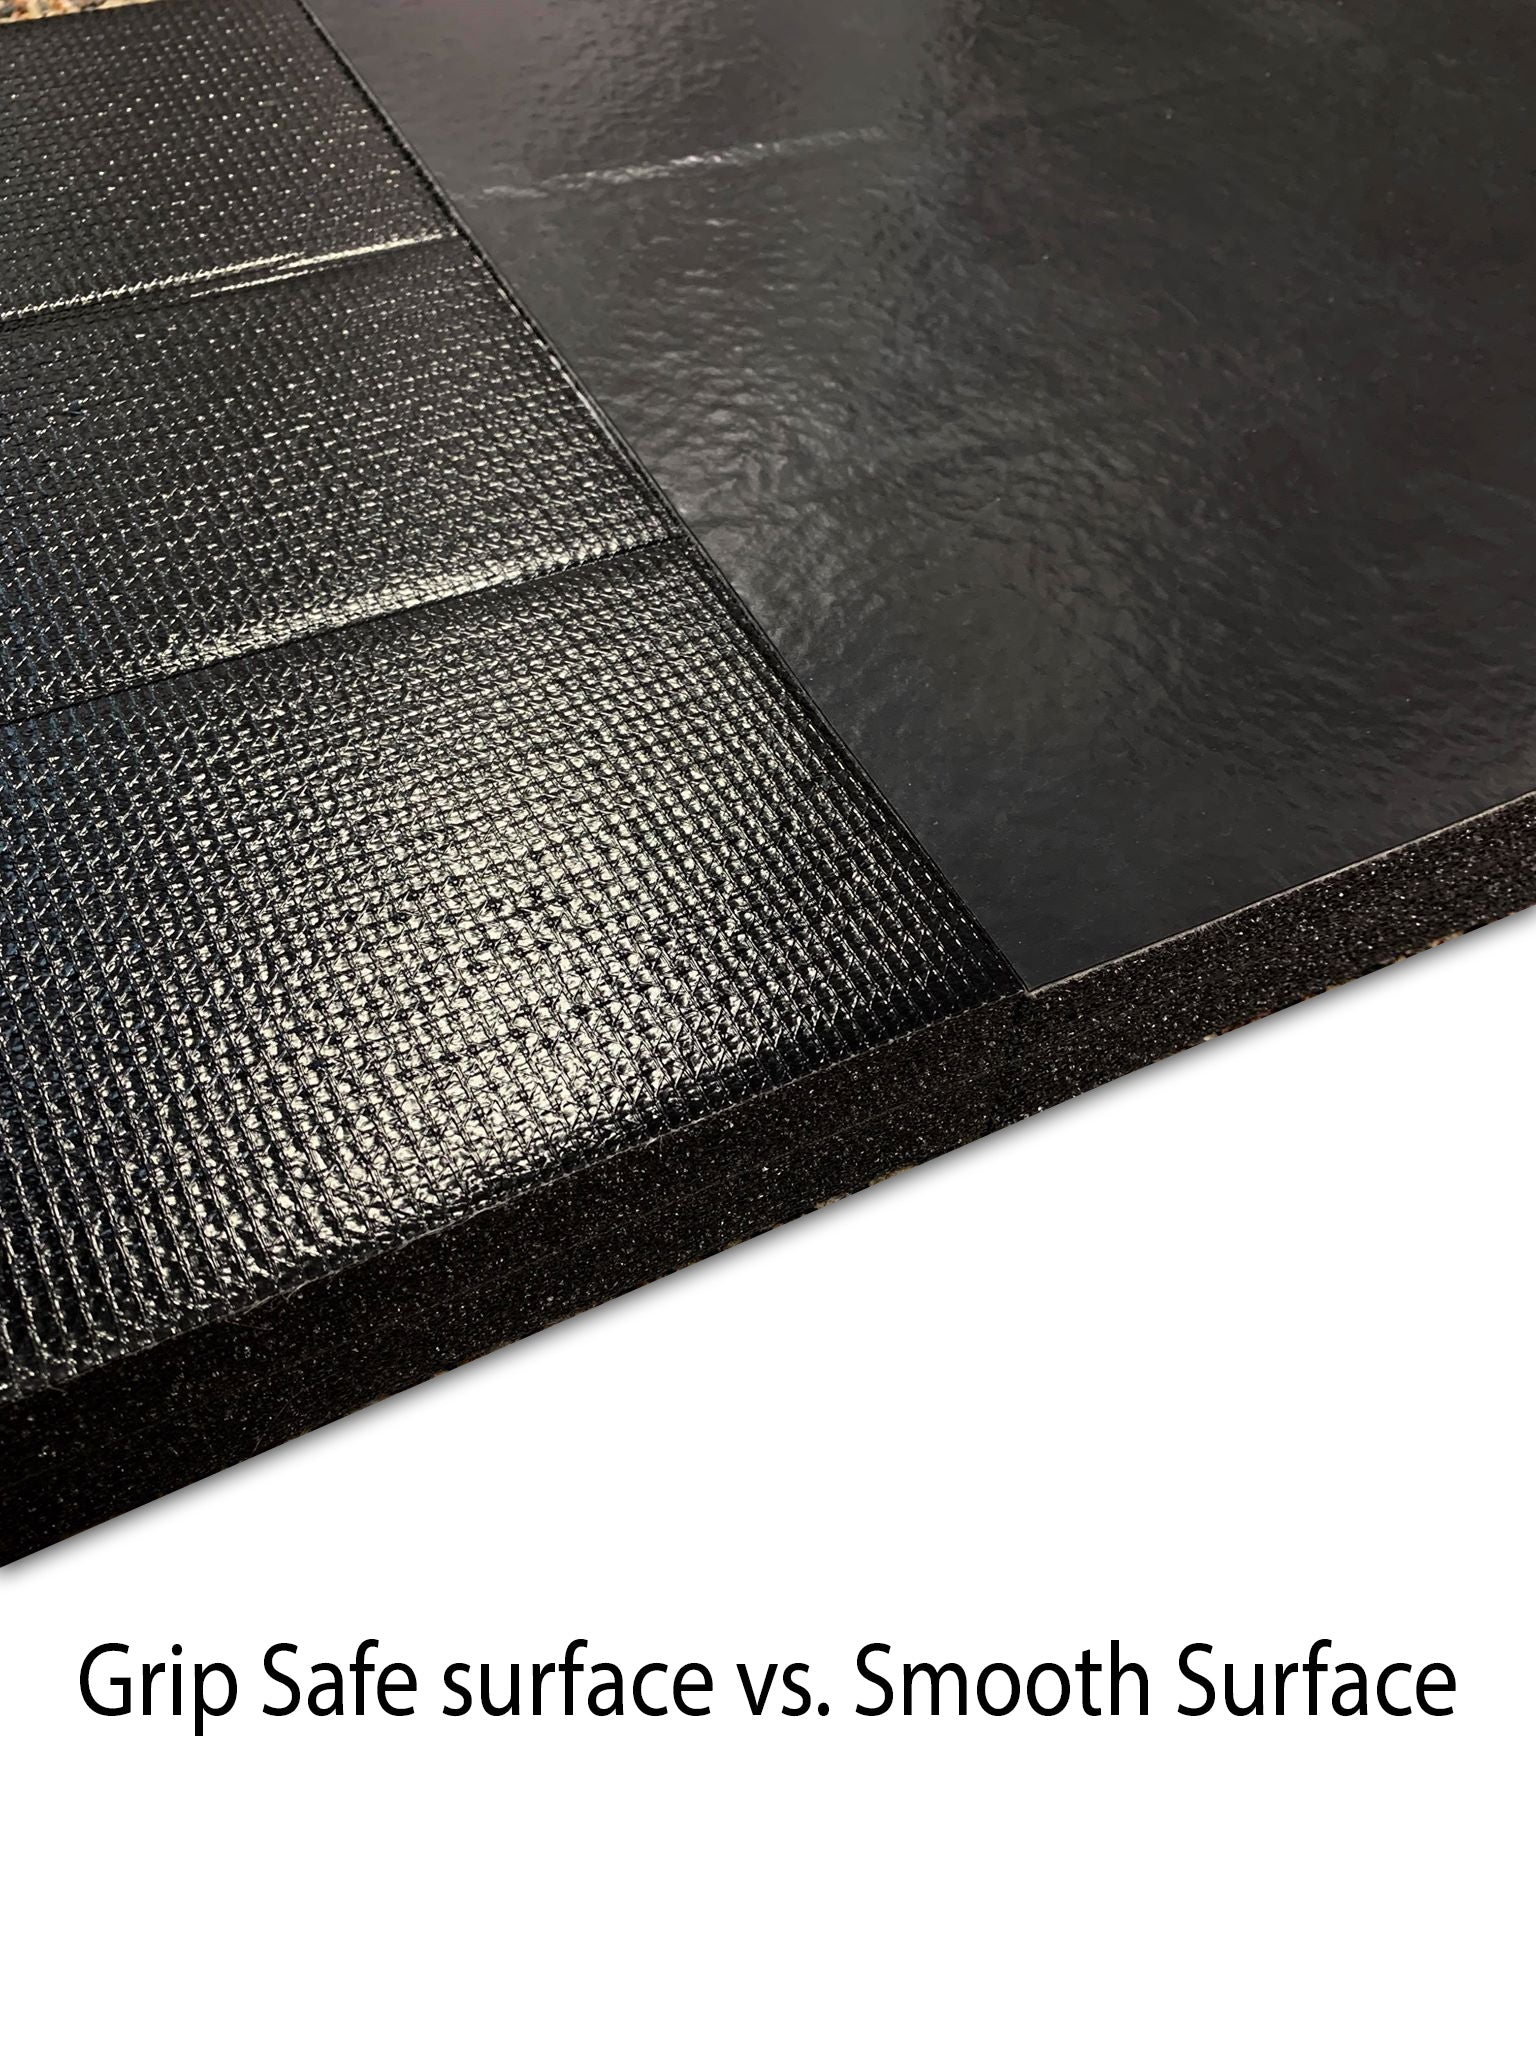 Grip Safe grappling mats vs. Smooth grappling mats